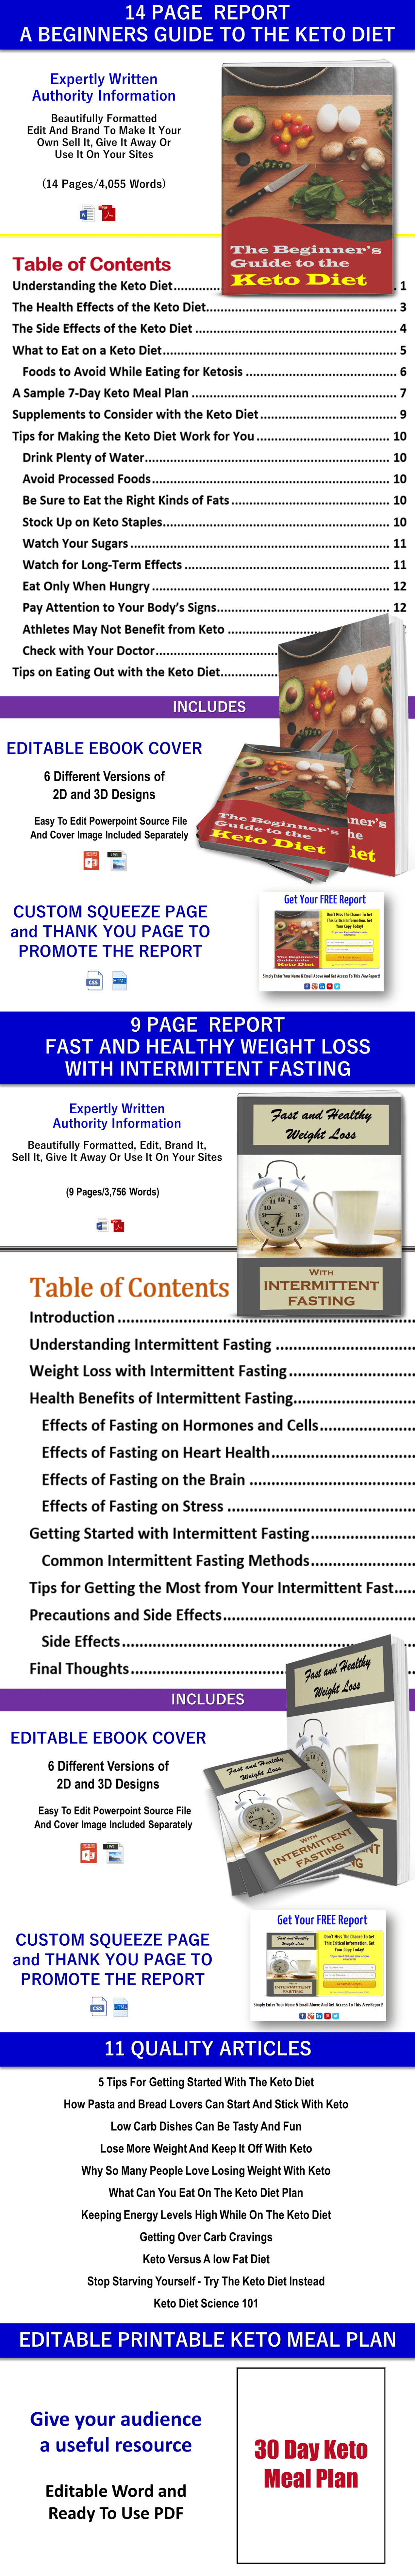 Ketogenic and Intermittent Fasting PLR